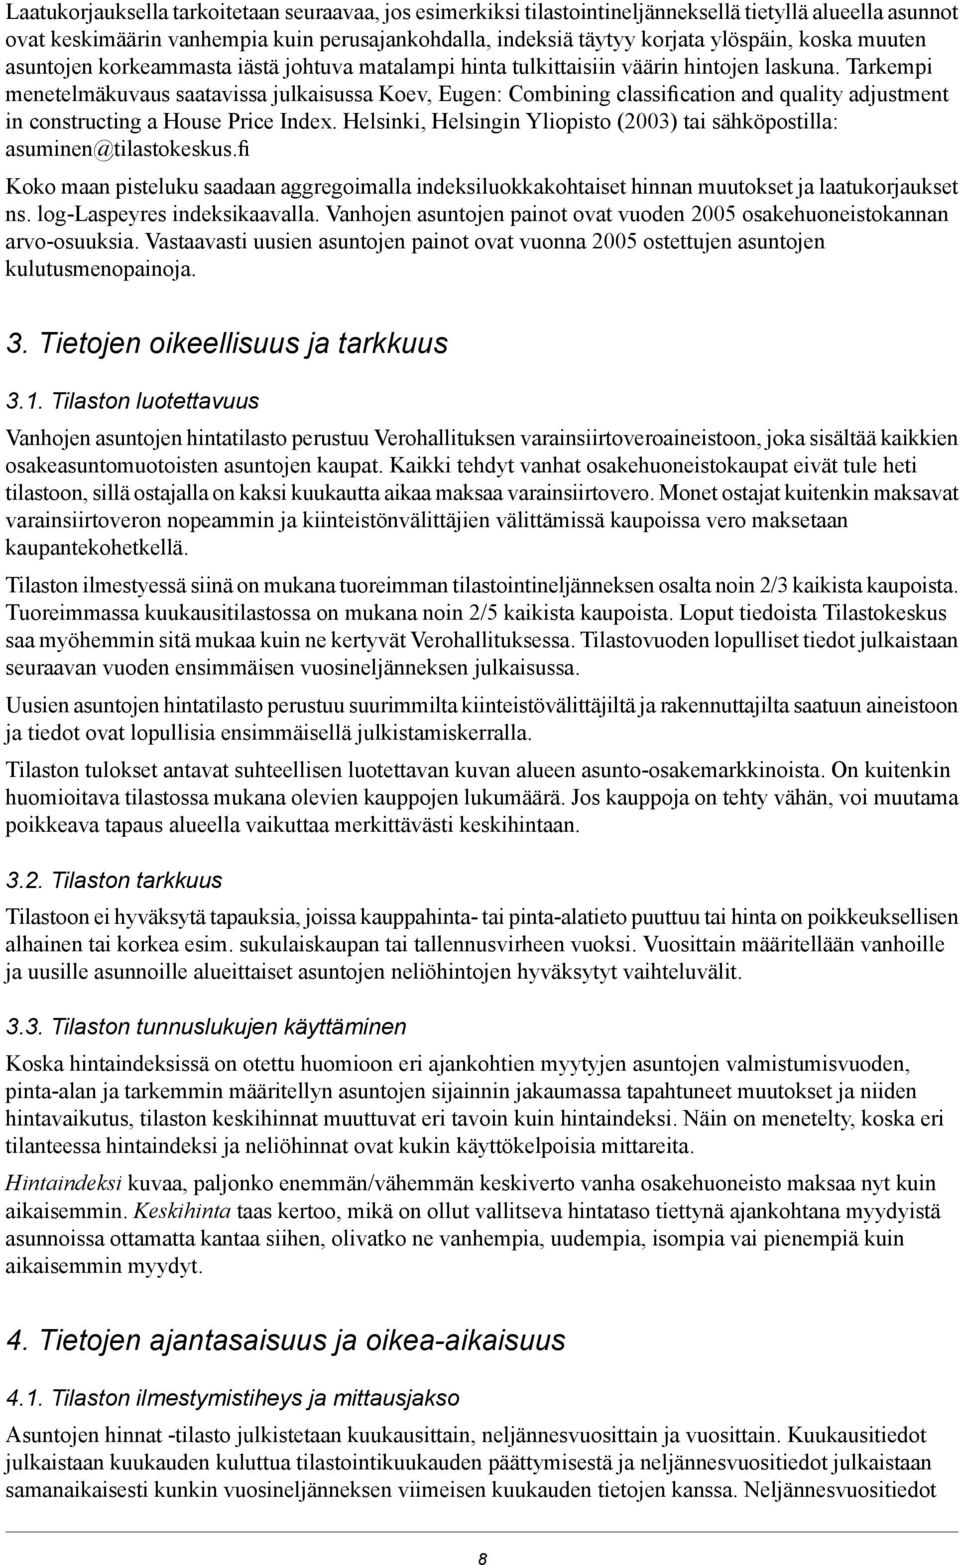 quality adjustment in constructing a House Price Index Helsinki, Helsingin Yliopisto (2003) tai sähköpostilla: asuminen@tilastokeskusfi Koko maan pisteluku saadaan aggregoimalla